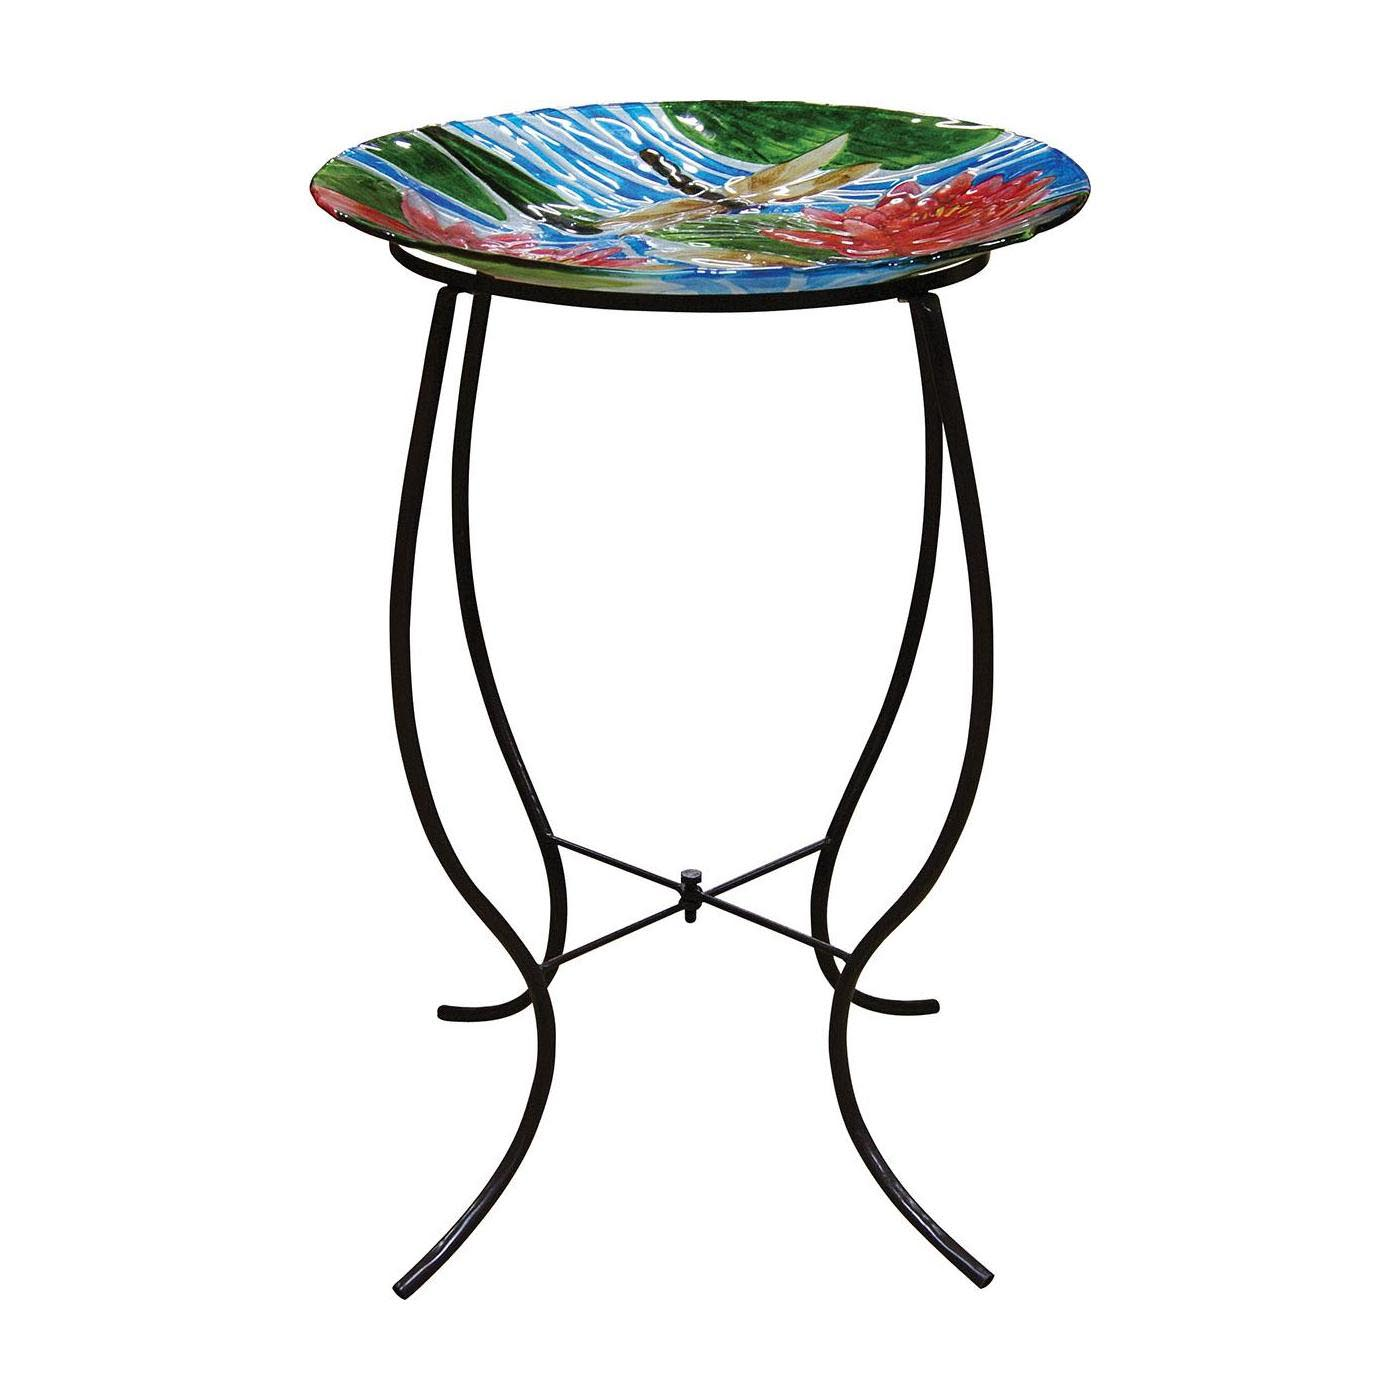 Glass Bowl Bird Bath with Stand